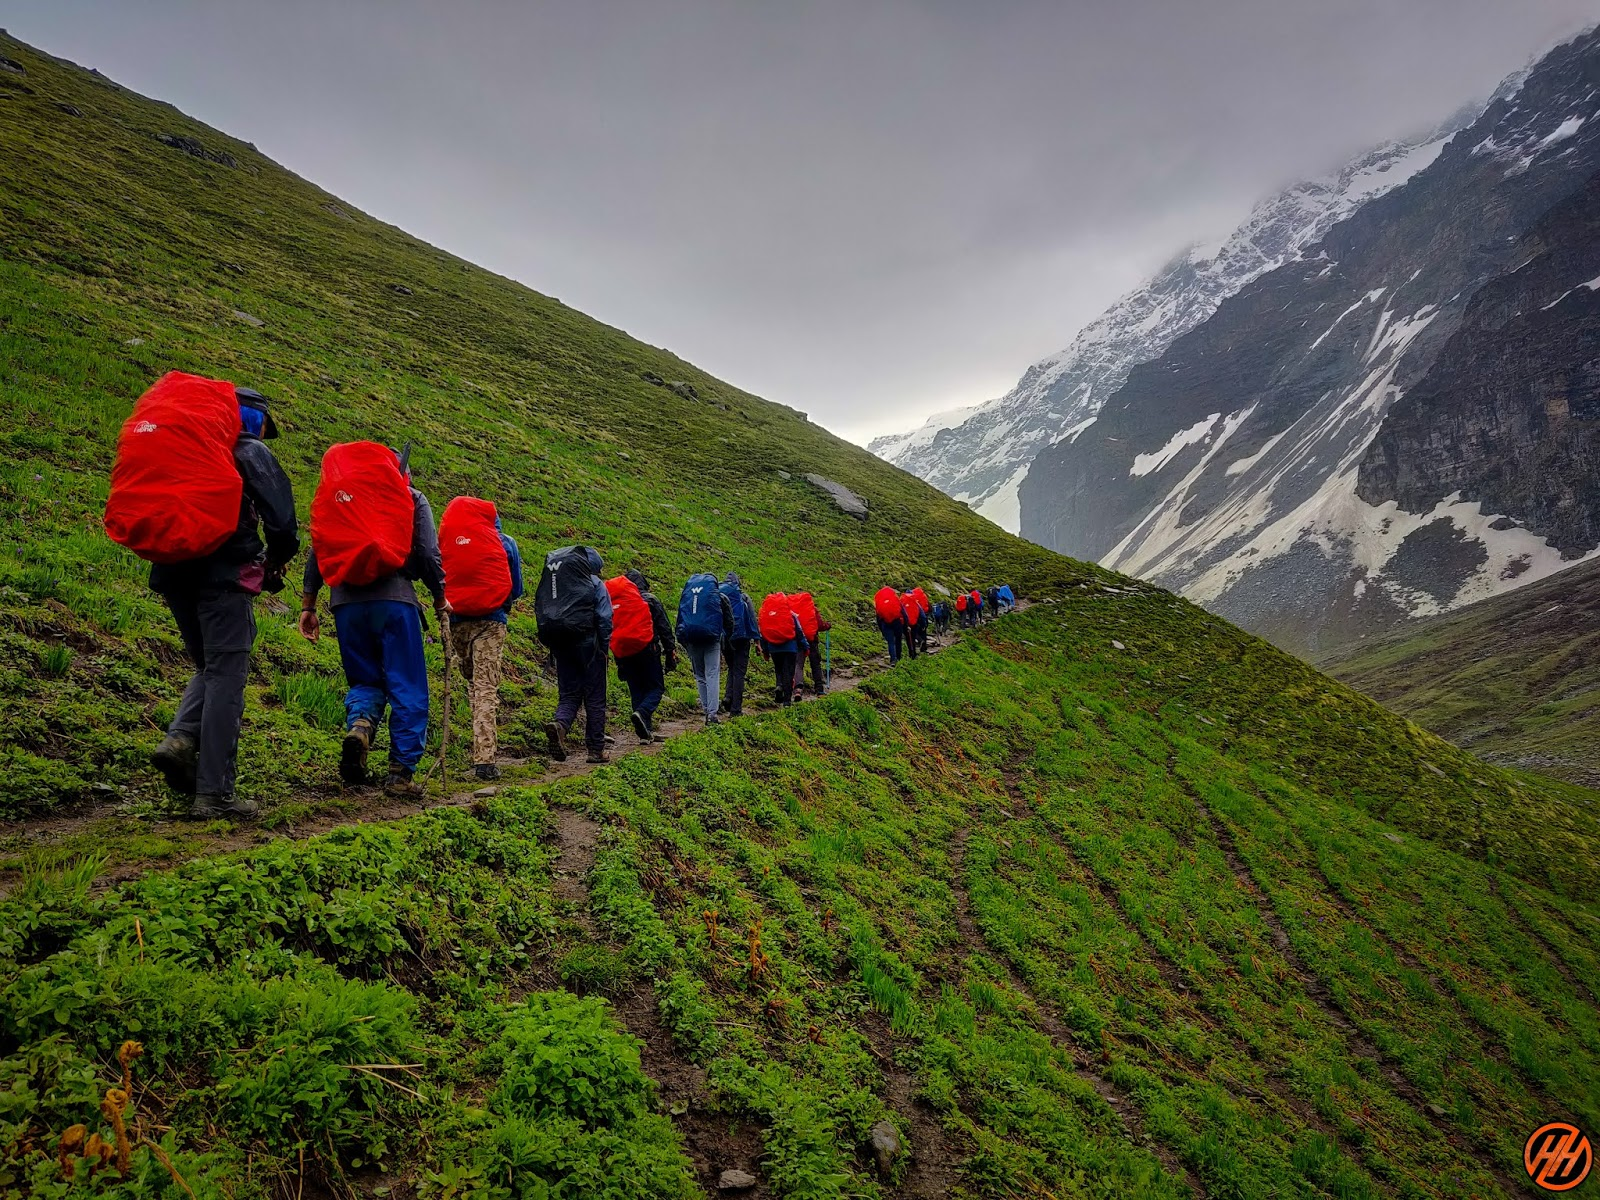 <p> Although, there are lots of Super Awesome Treks in Himachal to be concise and for your finest, I'm itemizing out Treks which Stands out from the Rest. So simply Sit Back and Enjoy our List of Best Himachal Treks.</p>  </p>  1. Triund Trek    <p> <p> Without any doubt, Triund Trek is without doubt one of the most scenic and breathtaking treks in North India. With the Panoramas of Kangra Valley on one facet and Dhauladhar ranges on the opposite facet, this trek witnesses a excessive quantity of crowd through the weekends and vacation seasons.</p> <p> It could be nice when you go to Triund through the weekdays as at the moment you'll get the sight of these iconic Himalayan ranges with none congestion.</p> <p> Install the camps and light-weight up a Bonfire below the shadow of stars and see how this place will contact your soul to the deepest. </p> <p> There's no such place as Triund Trek.</p>   Trekking Days: 2 Days  Best Time To Visit Triund Trek: The Best Time to go to Triund is Believed to be from March-June and September-November. Elevation: 2850 metres Difficulty Of Trek: Easy 📍 Google Maps: Triund Trek     2. Hampta go trek    <p> <p> Hampta Pass Trek provides you with unforgettable Trekking Experiences in the presence of the Postcard-sort of Landscapes. </p> <p> Walkthrough the robust terrains to see what precise Trekking is. Amidst the Glaciers, Kullu valleys, Lahaul Mountains, Jwara's WildFlower Fields, and so forth. Hampta Pass deserves to be part of your Bucket List.</p> <p> People with good health stage appears appropriate for Hampta Pass Trek, there are lots of difficult locations in this Trek which may not be tackled by Unfit individuals.</p>   Trekking Days: 5 Days Best Time To Visit Hampta Pass Trek: May-June and August-October are thought of because the Best Time to go to Hampta Pass Trek. Elevation: 4,270 metres Difficulty Of Trek: Easy to Moderate 📍 Google Maps: Hampta Pass Trek    3. Pin Parvati Pass    <p> <p> It is without doubt one of the har